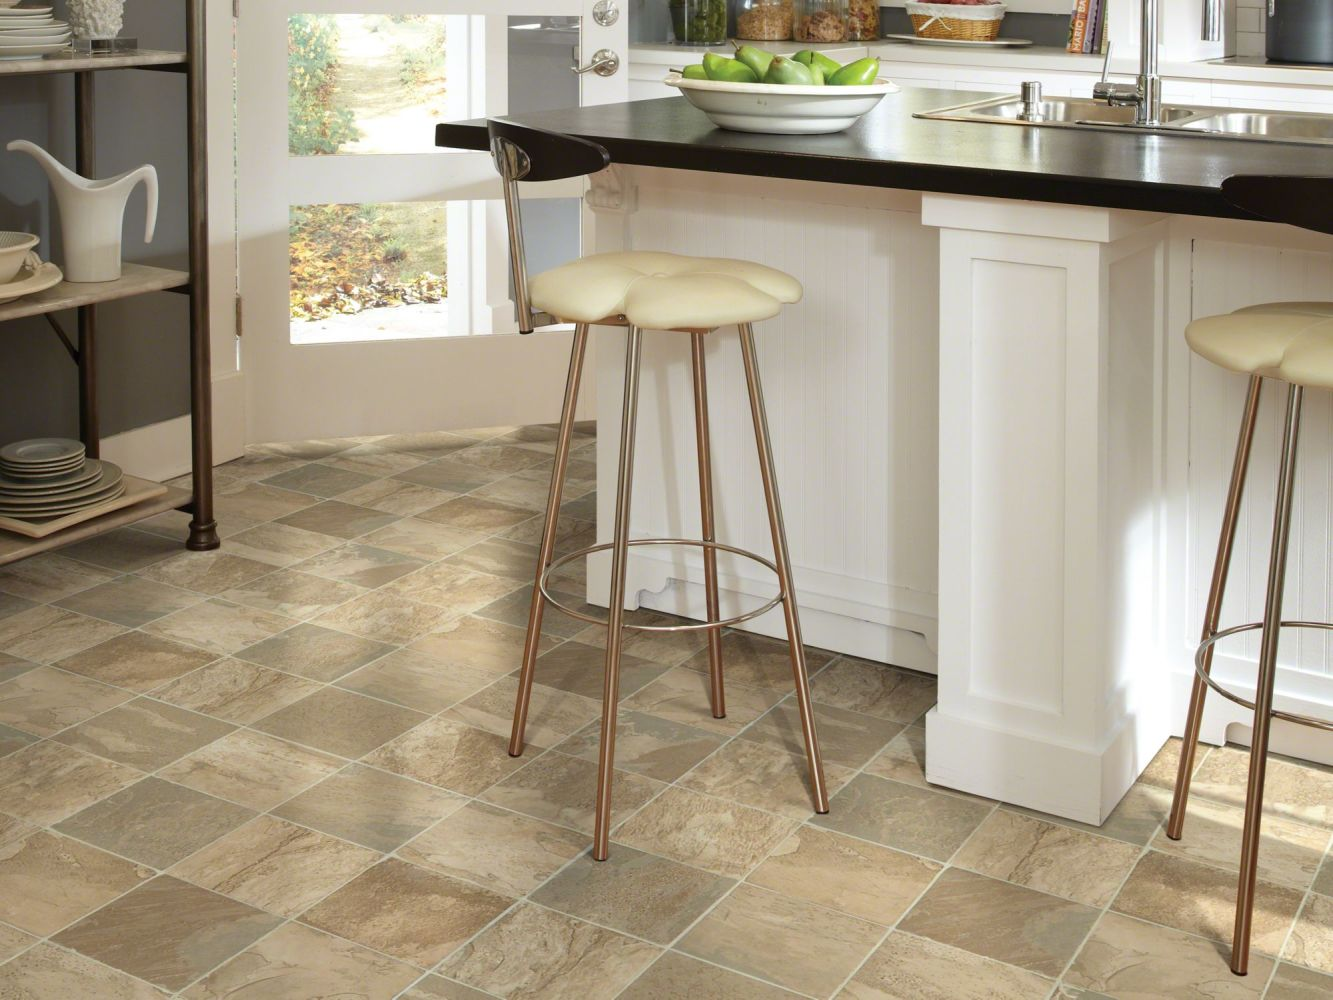 Shaw Floors Vinyl Residential Great Basin Cornerstone 00117_0611V